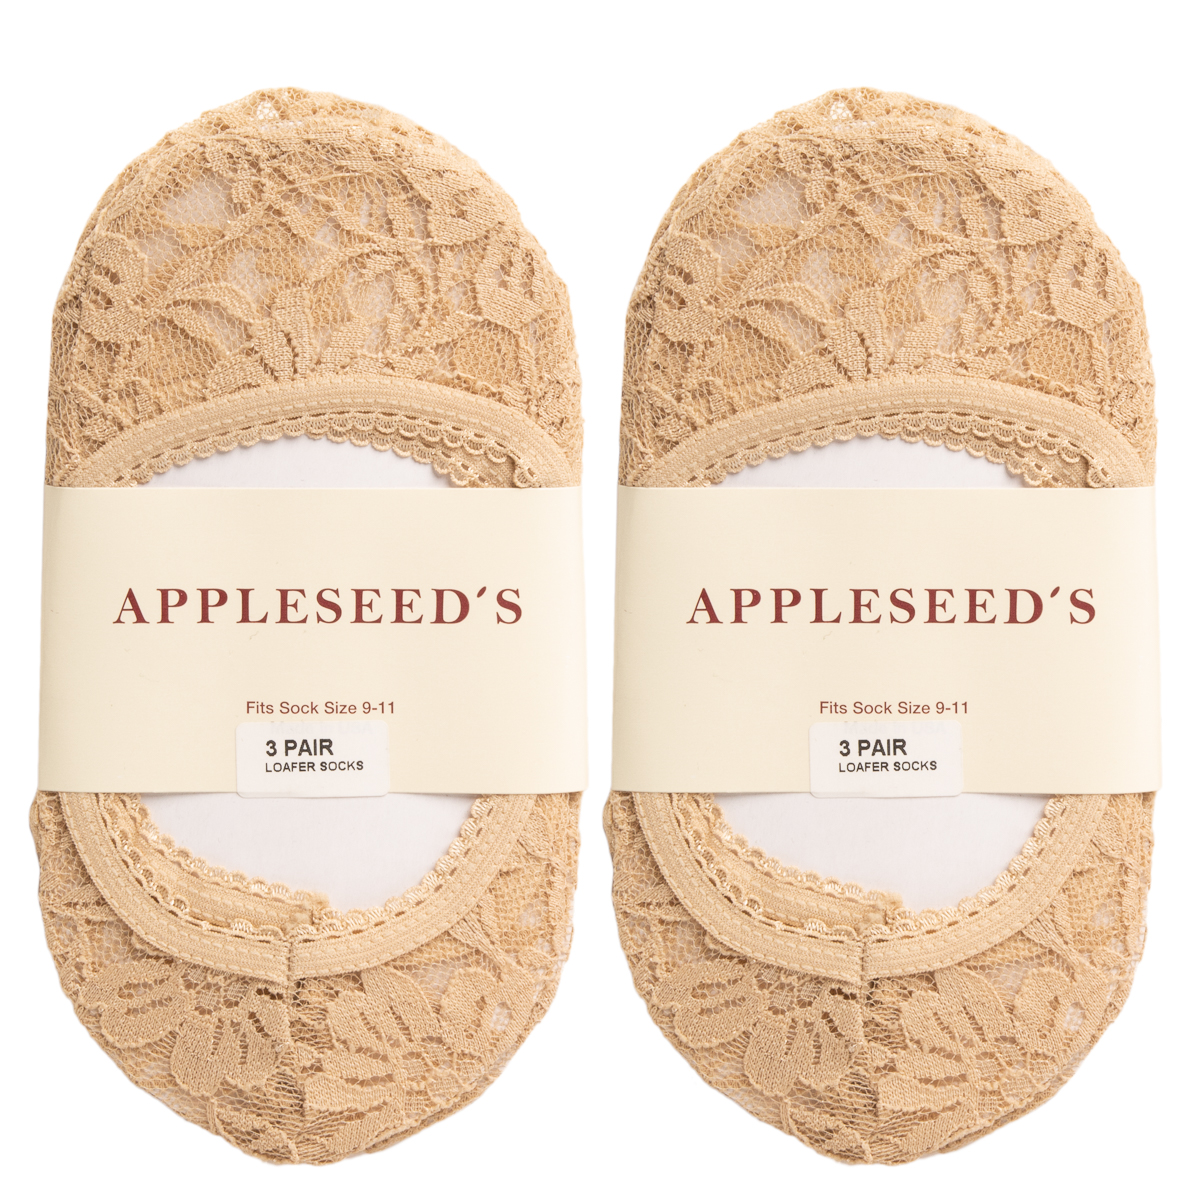 6 Pack Appleseed/'s Cute Ladies No Show Socks Footie Womens Low Cut Floral Lace